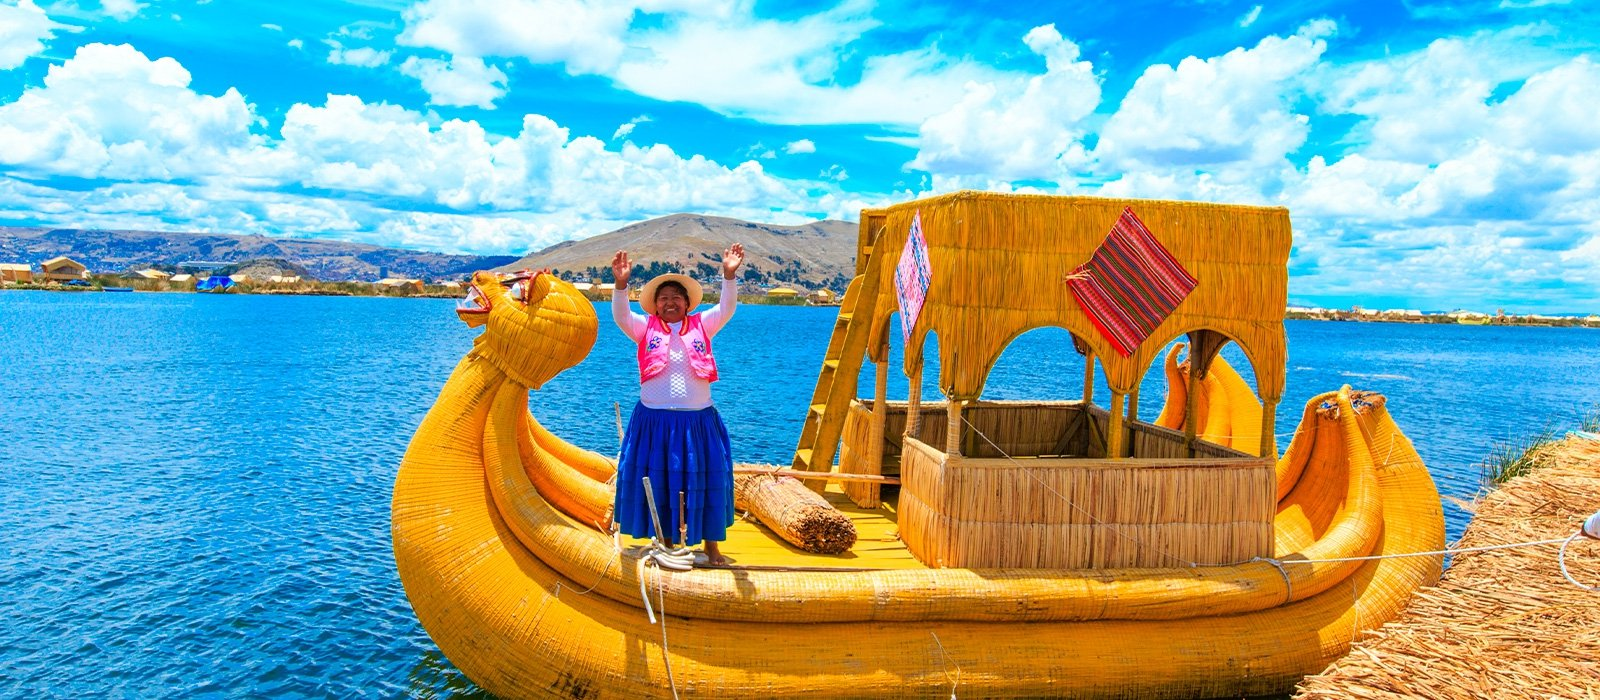 Floating Island of the Uros